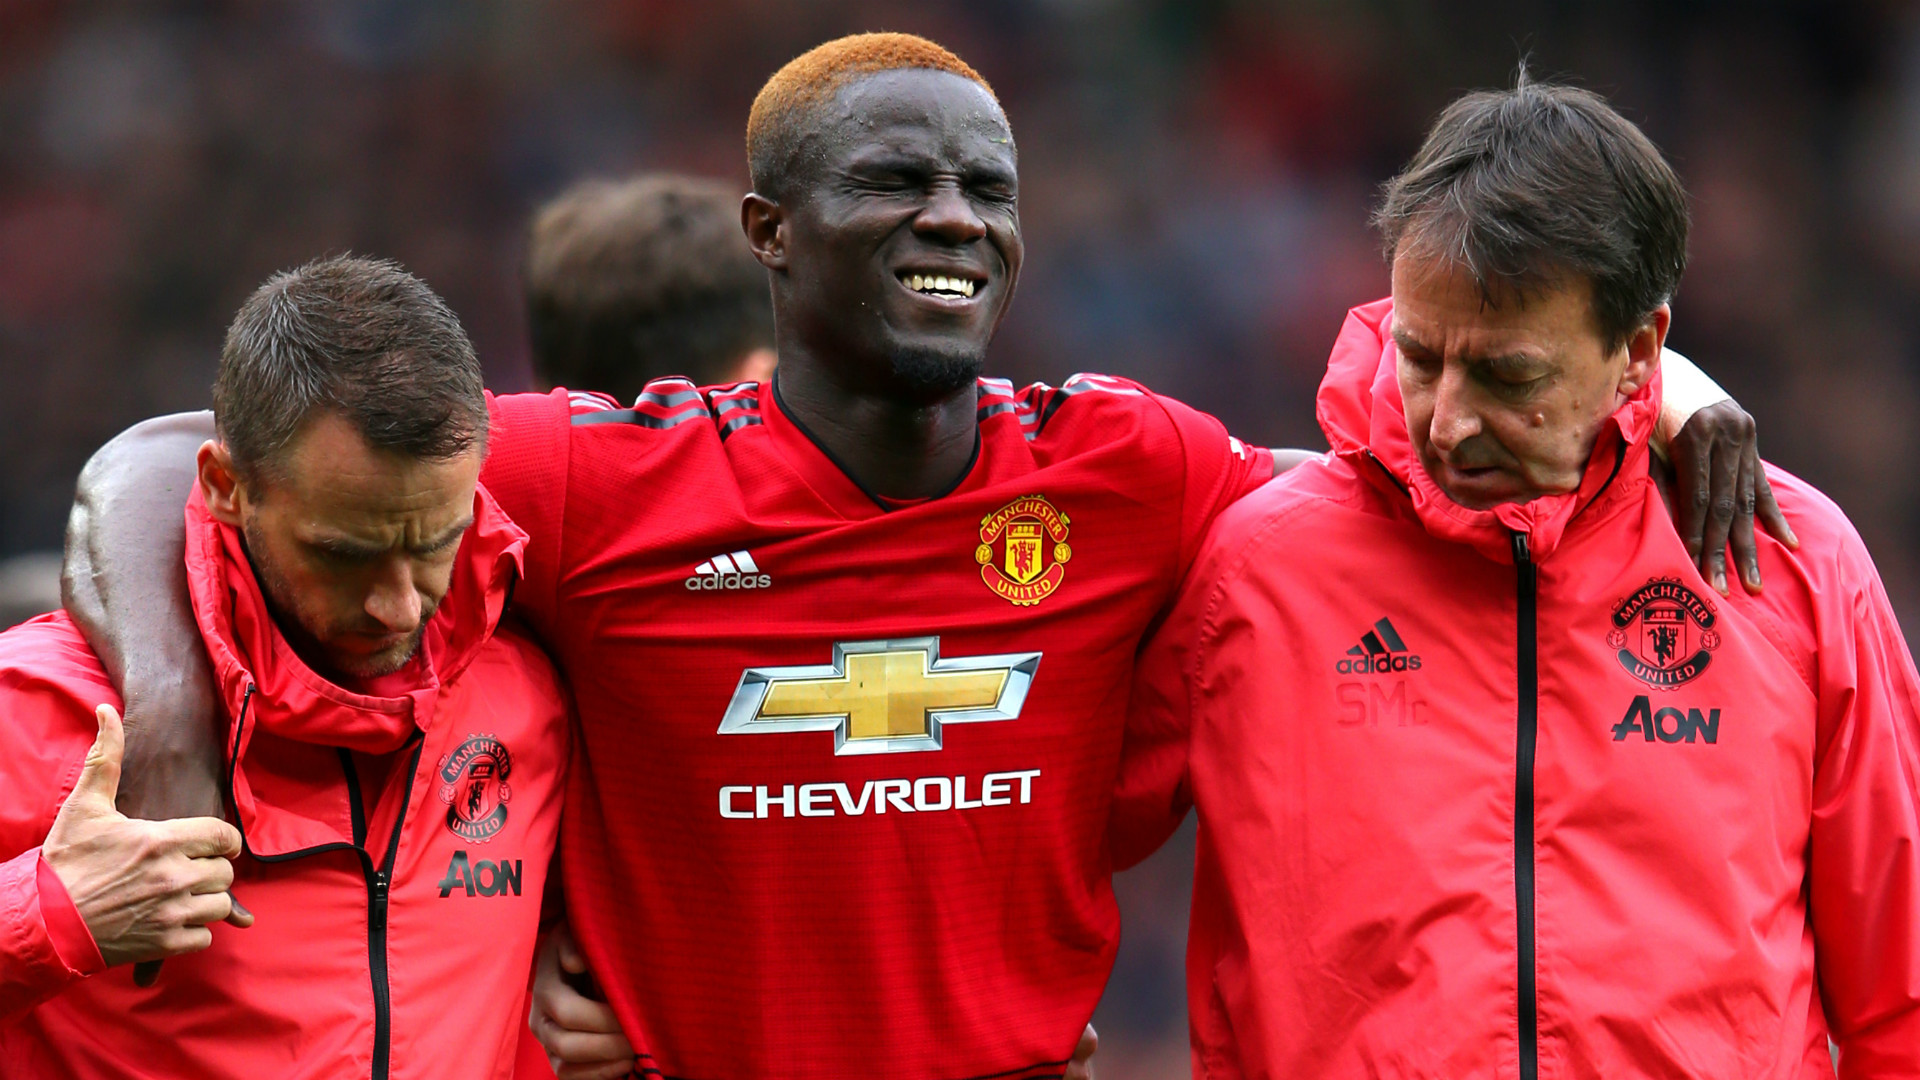 Manchester United gaffer Ole Gunnar Solskjaer has said he expects more consistency from injury prone defender Eric Bailly after the Ivorian put up an impressive display against Brighton.